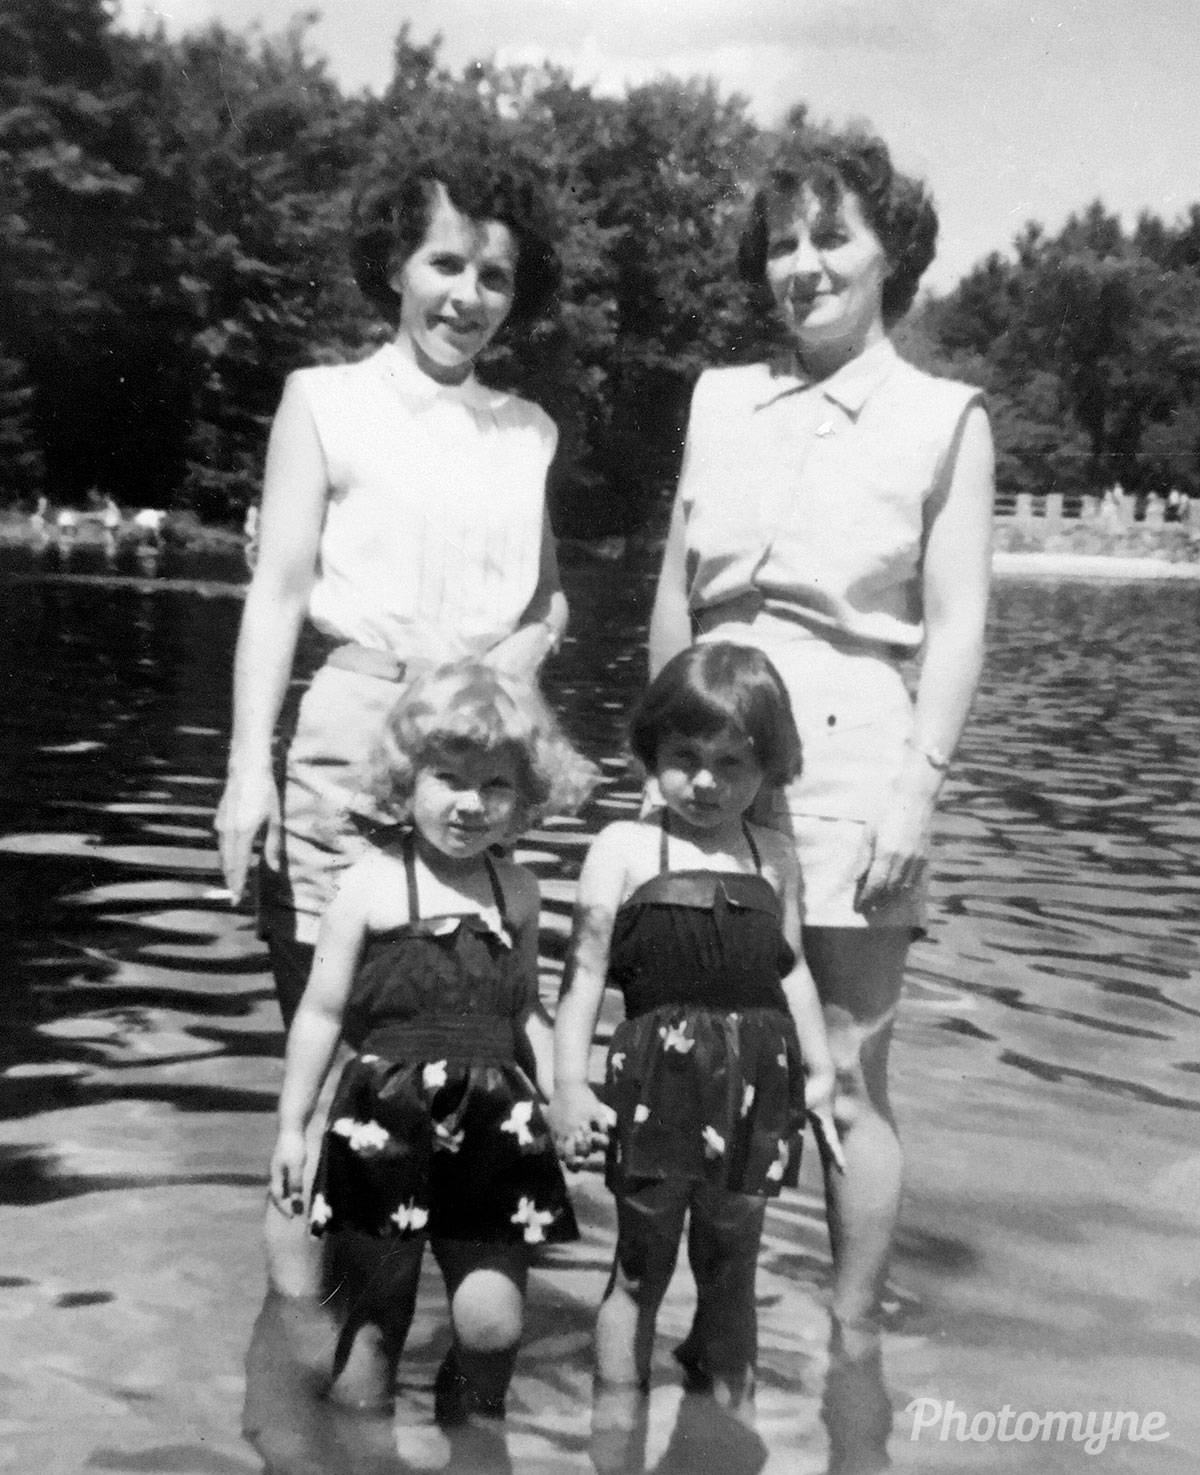 At the lake, US, 1955